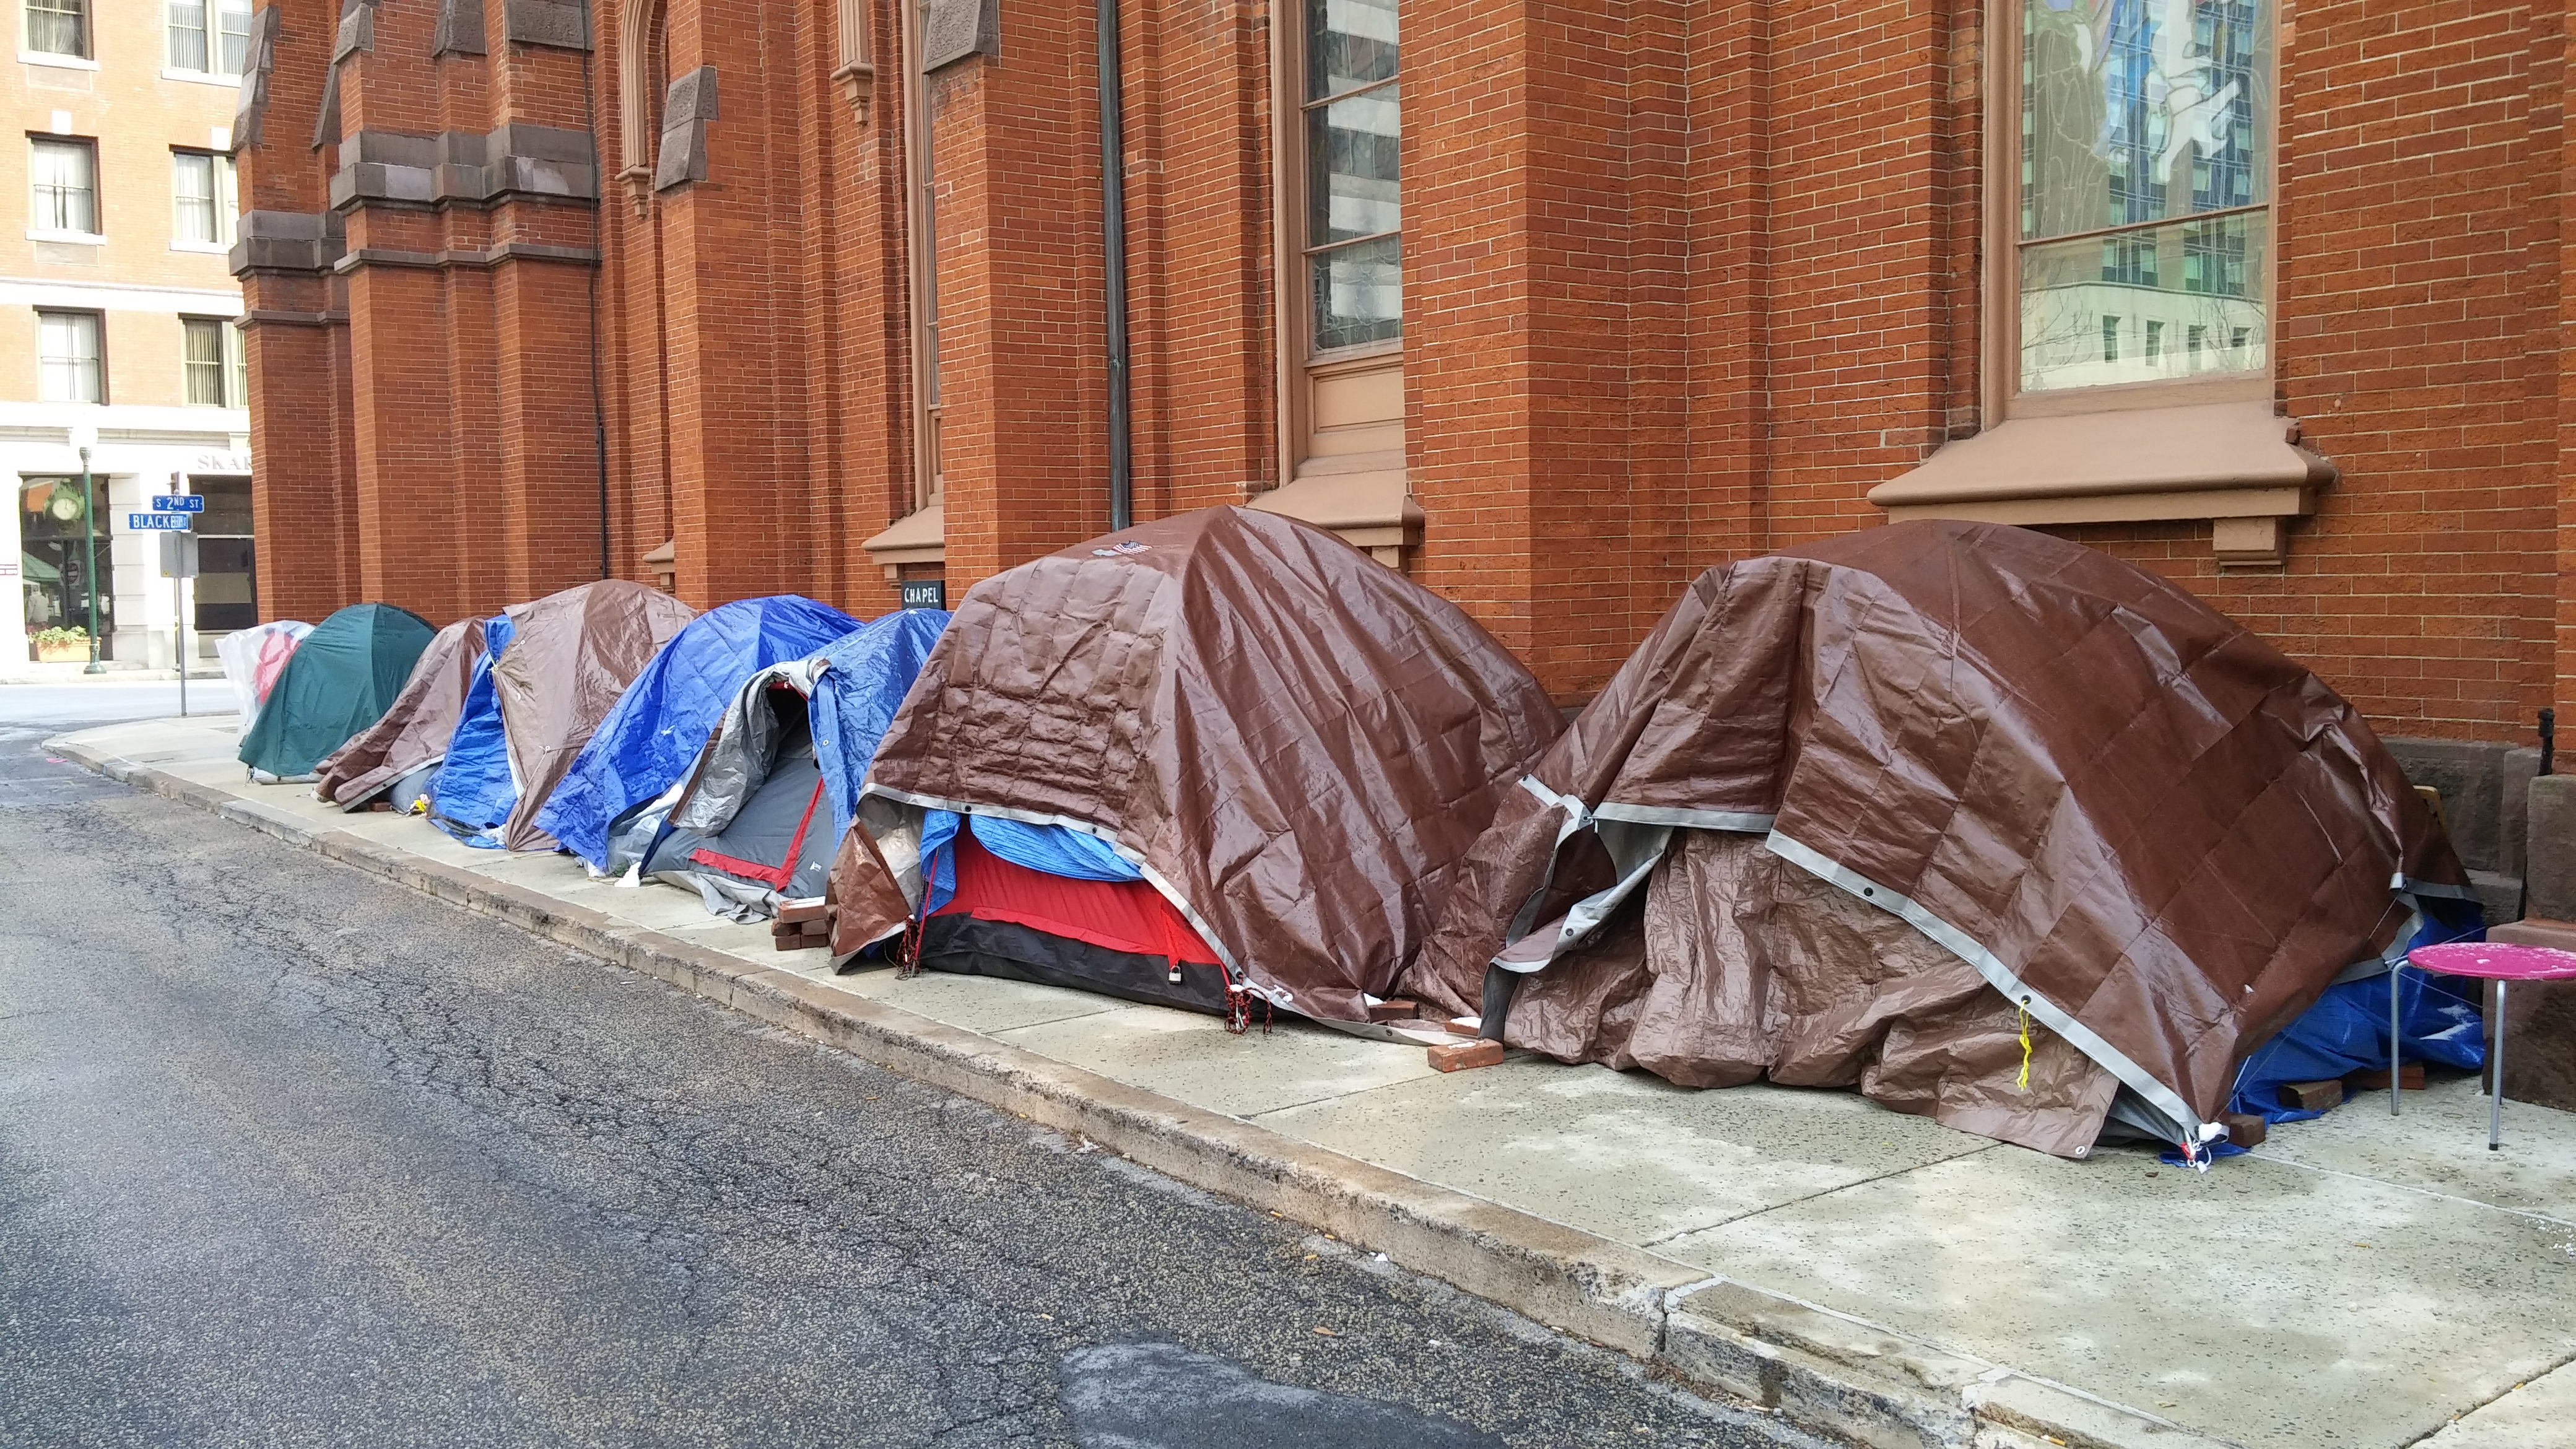 market square church comes to rescue of harrisburg homeless | synod